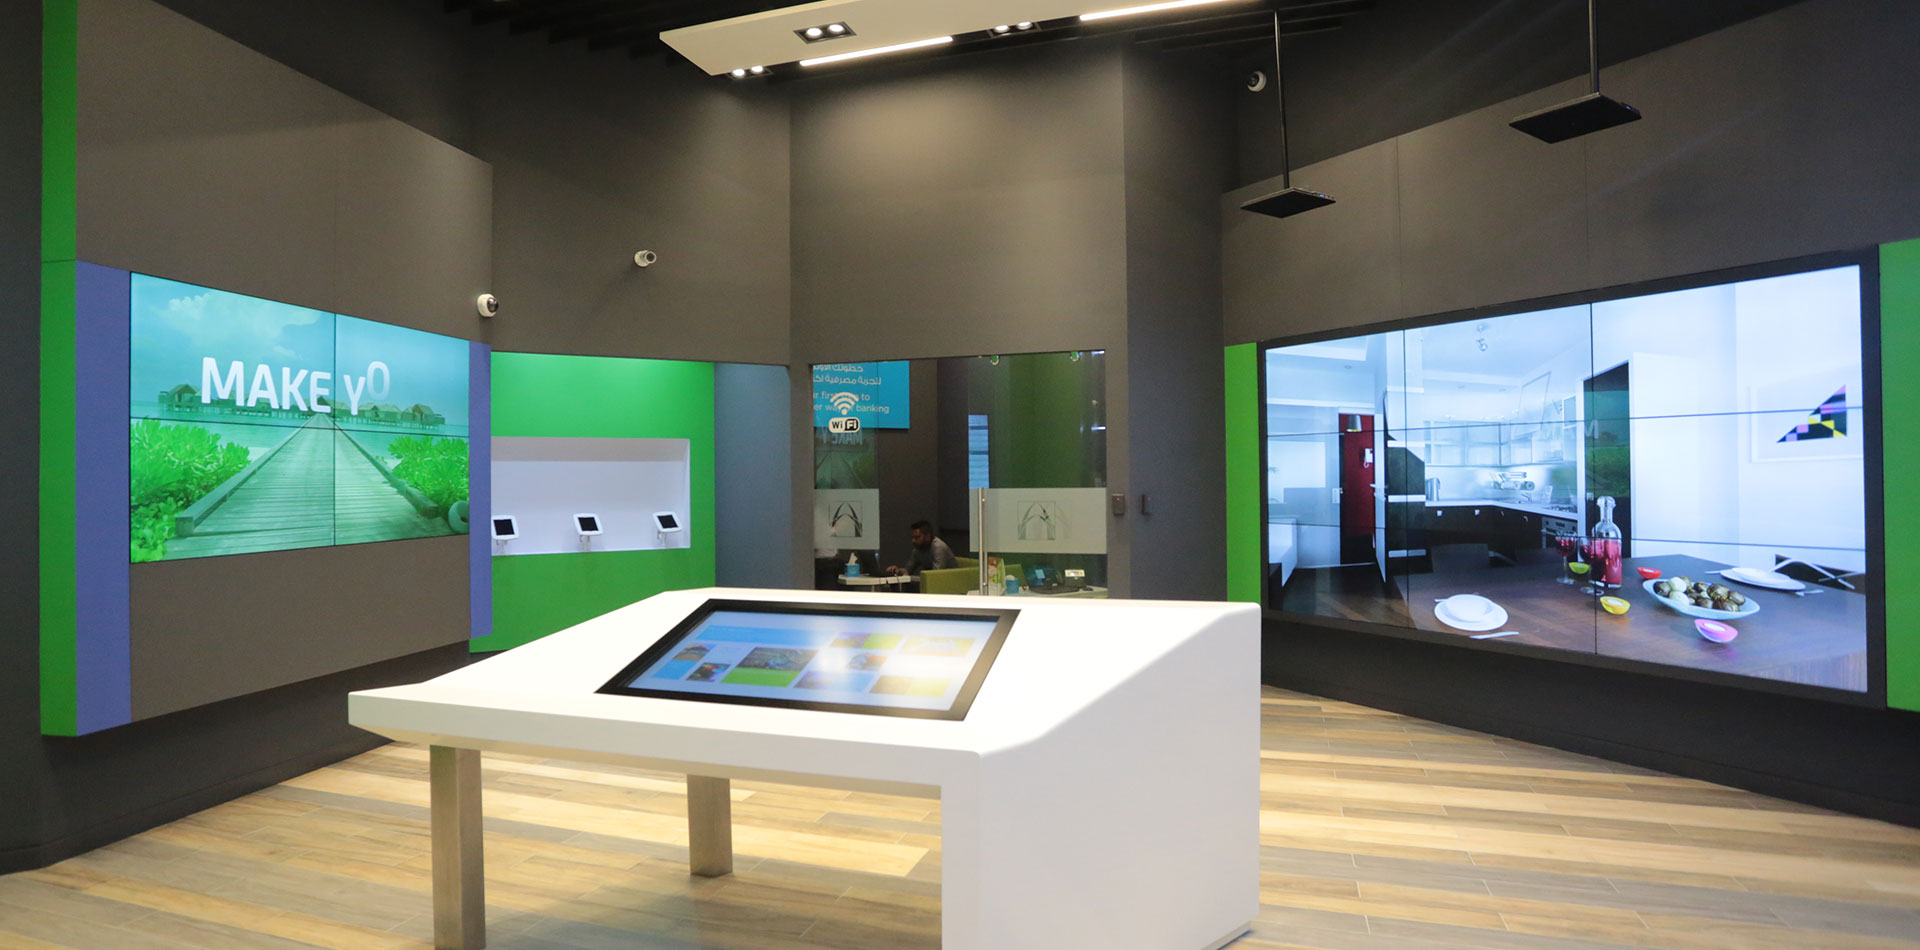 Video Walls make your Brand Stand out from the Crowd